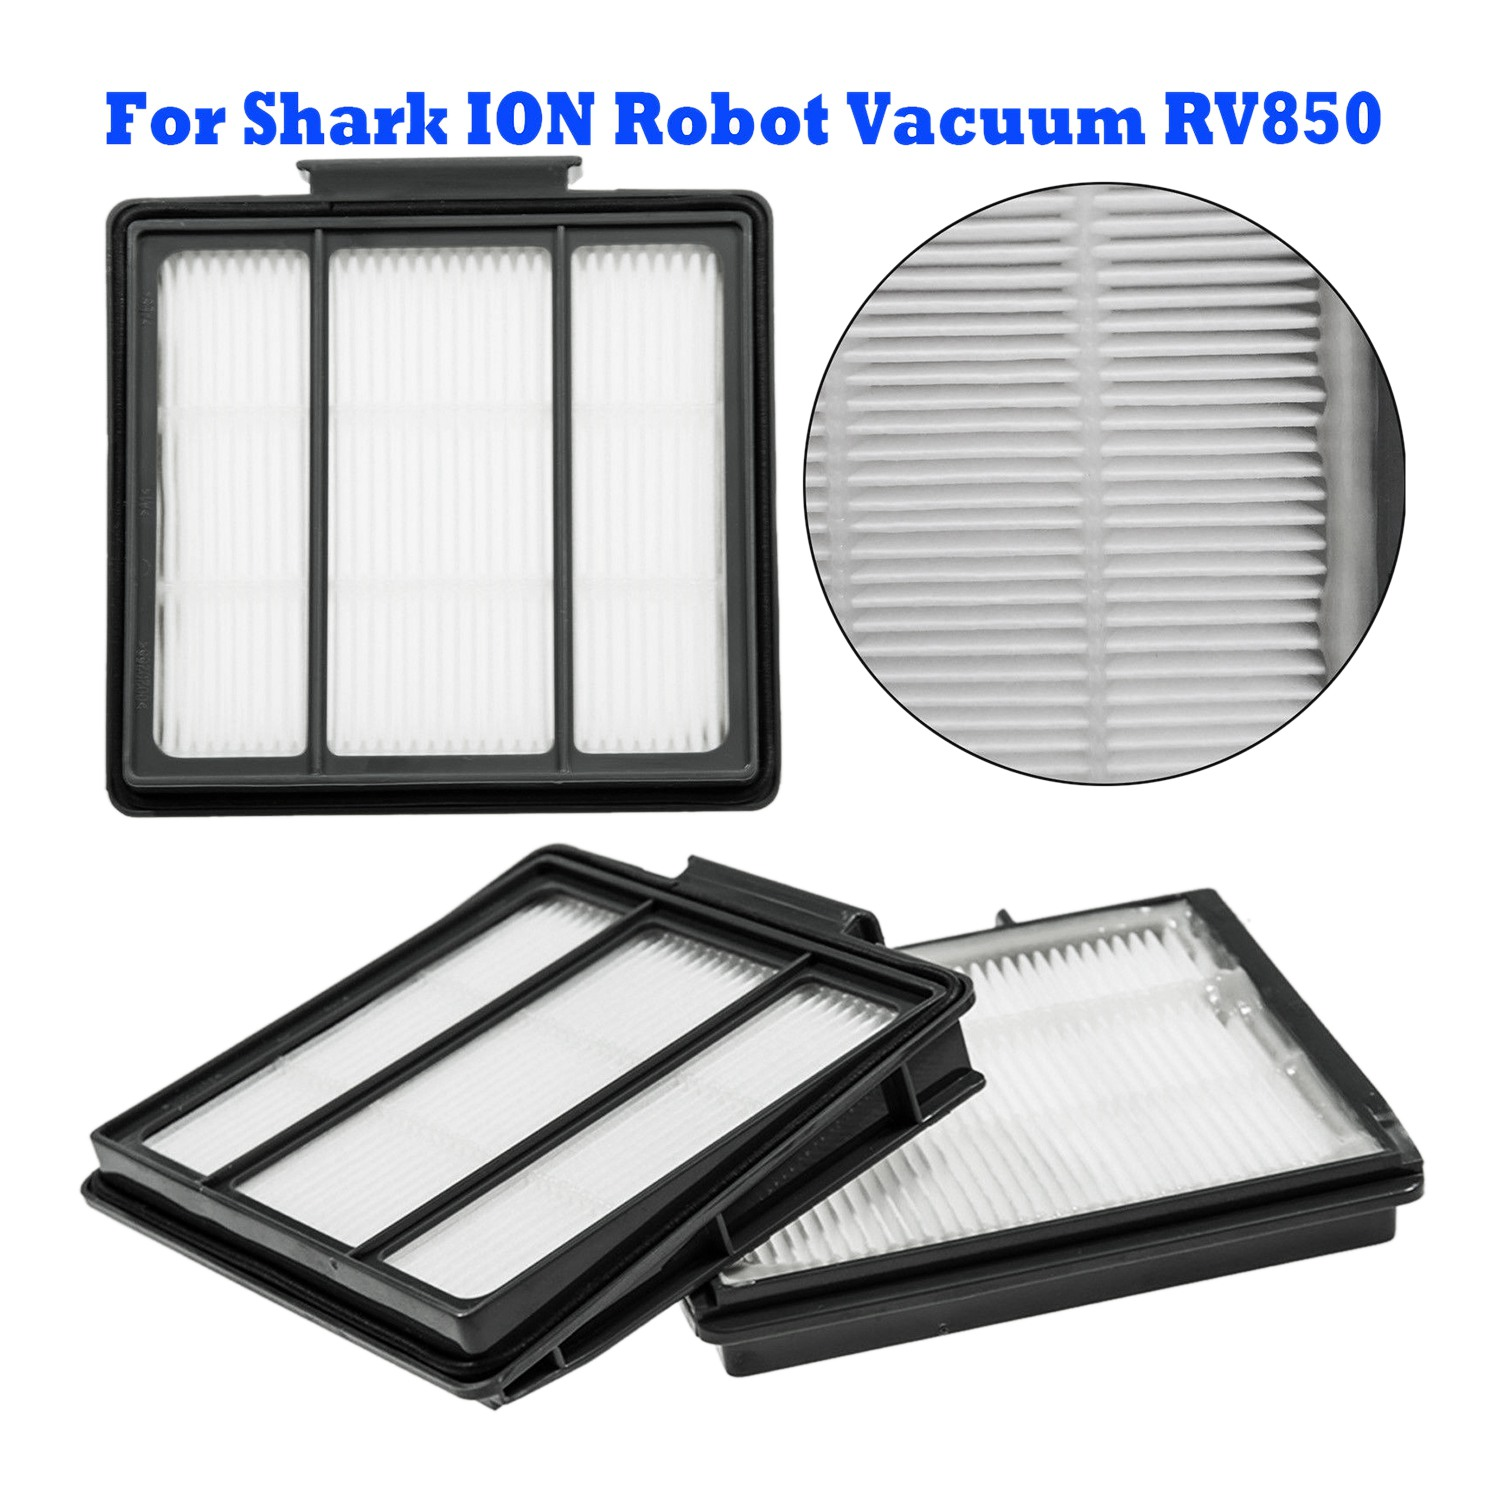 Constructive Vacuum Cleaner Hepa Filter Kit Replacement For Shark Ion Robot Vacuum Rv850 With Wlan To Clear Out Annoyance And Quench Thirst Home Appliance Parts Cleaning Appliance Parts